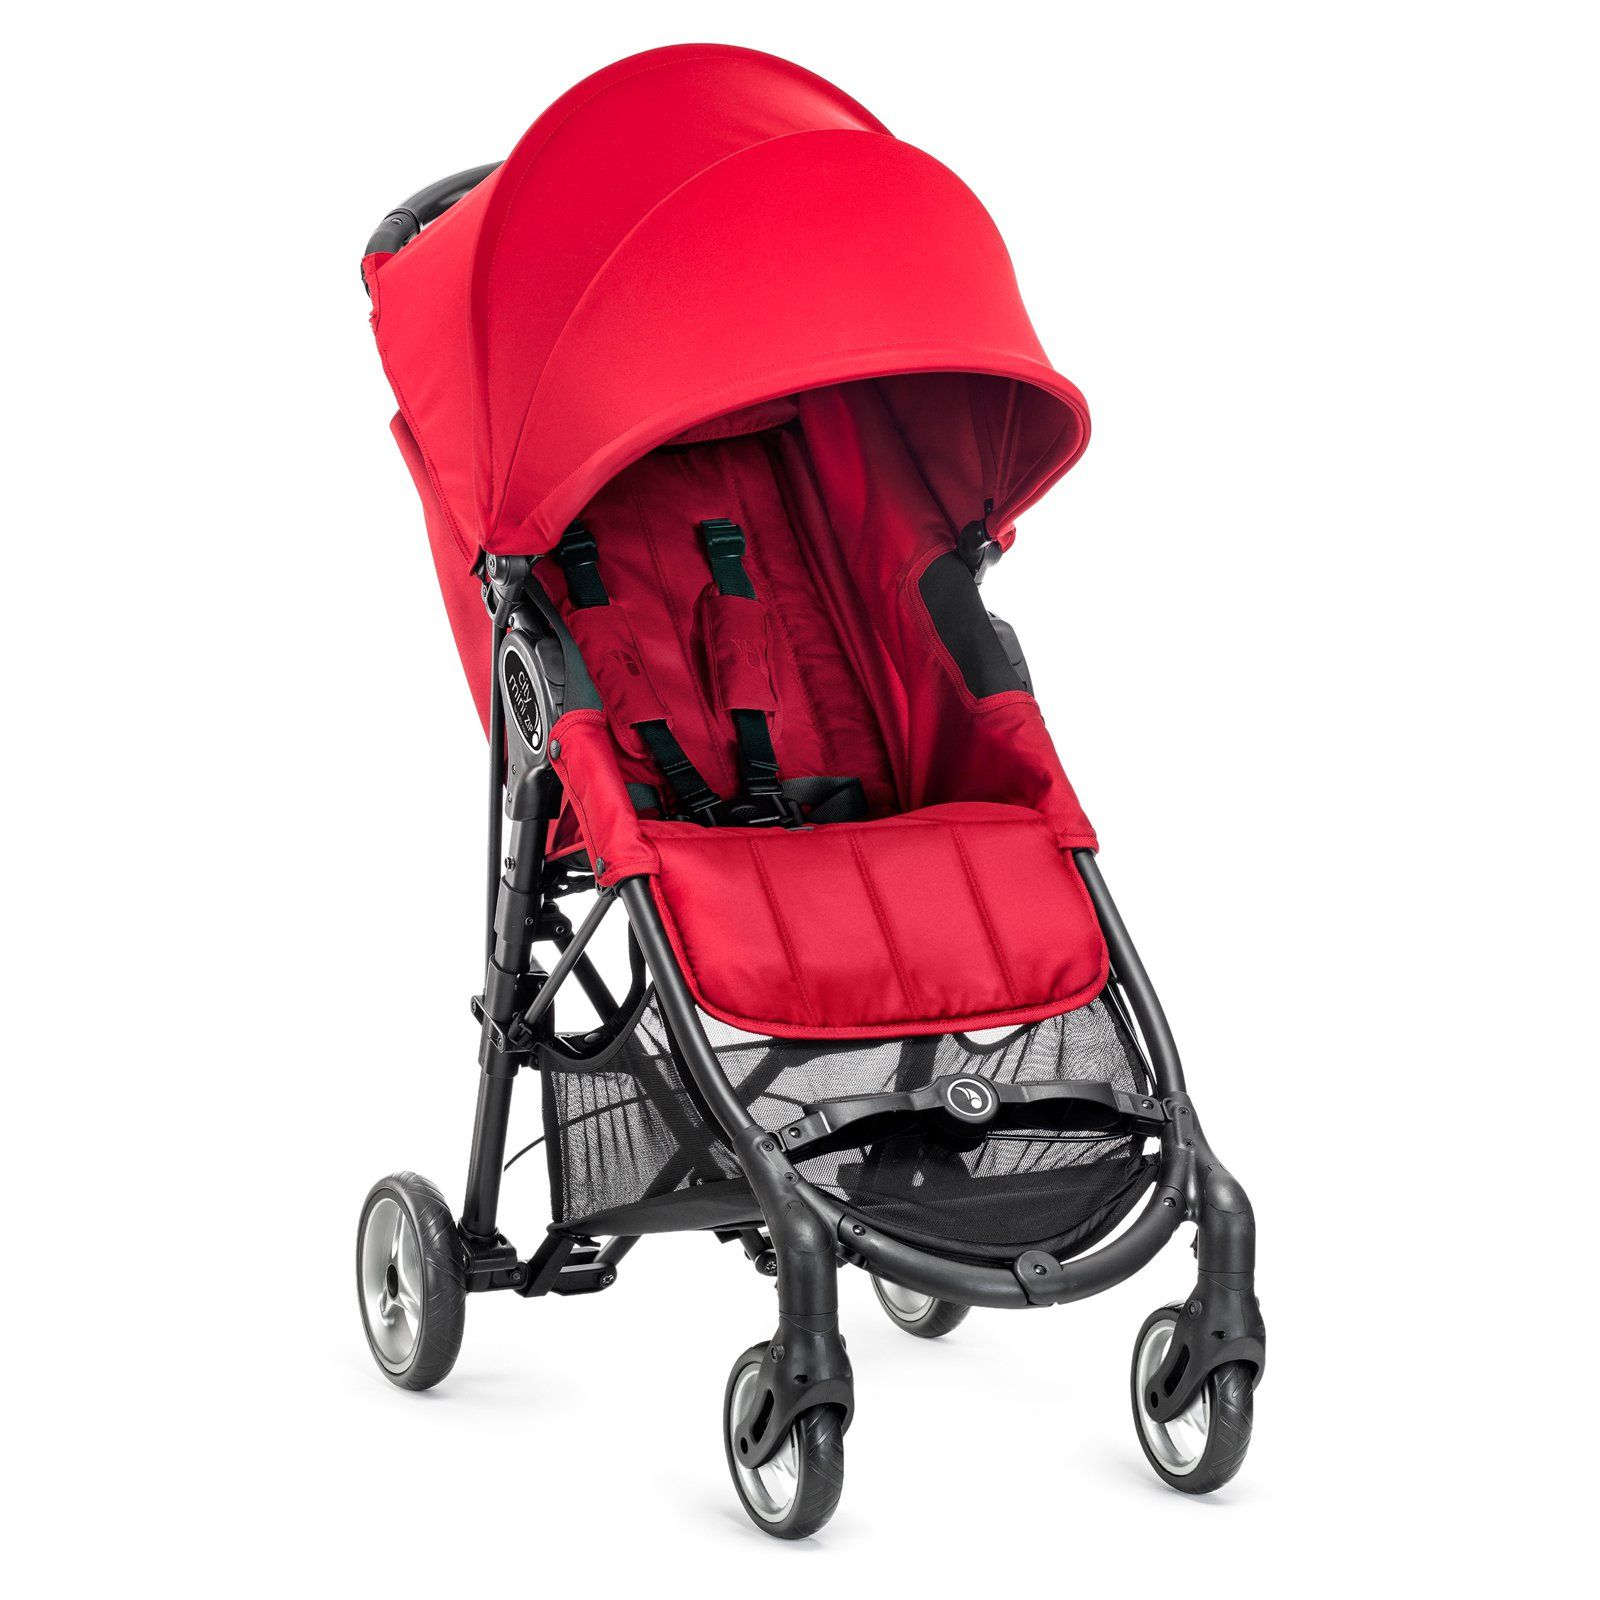 Goodbaby GB Pockit Plus Compact Stroller in Cherry Red NEW ...